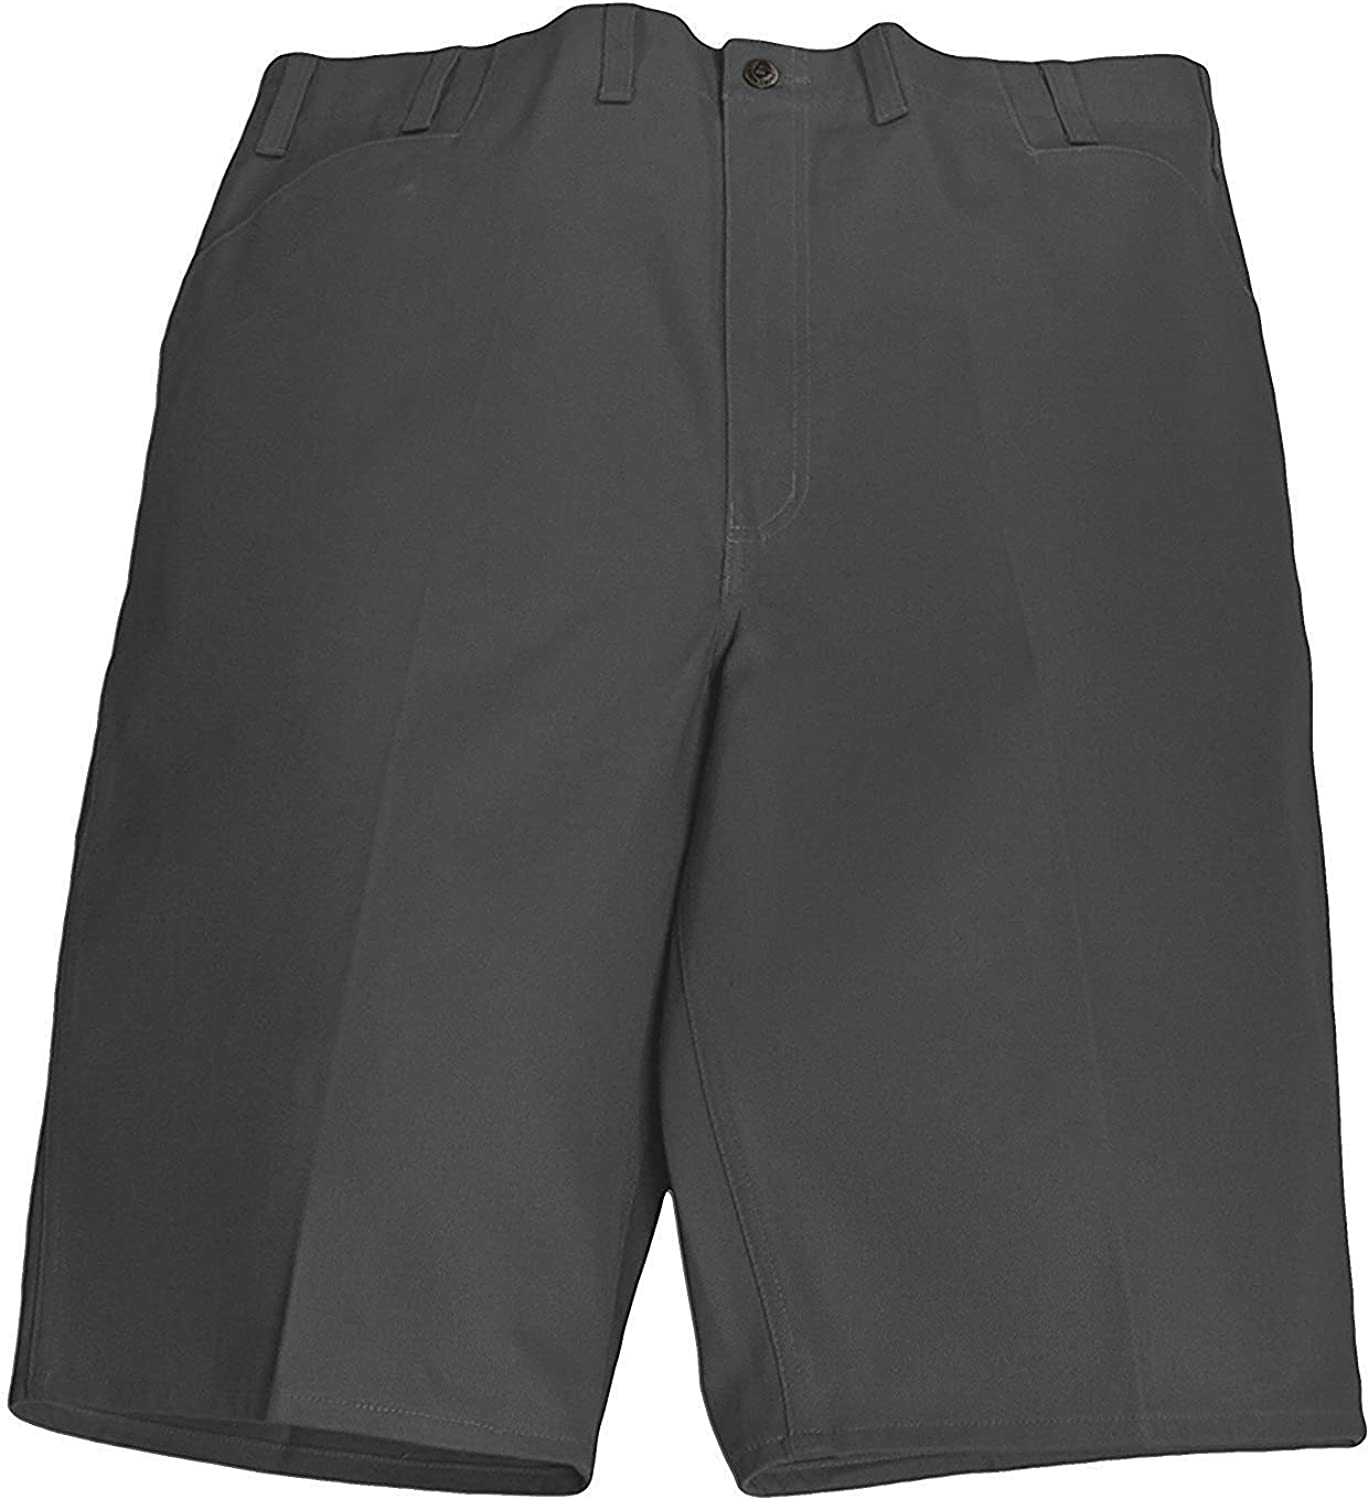 Ben Davis Original Shorts 498 Navy